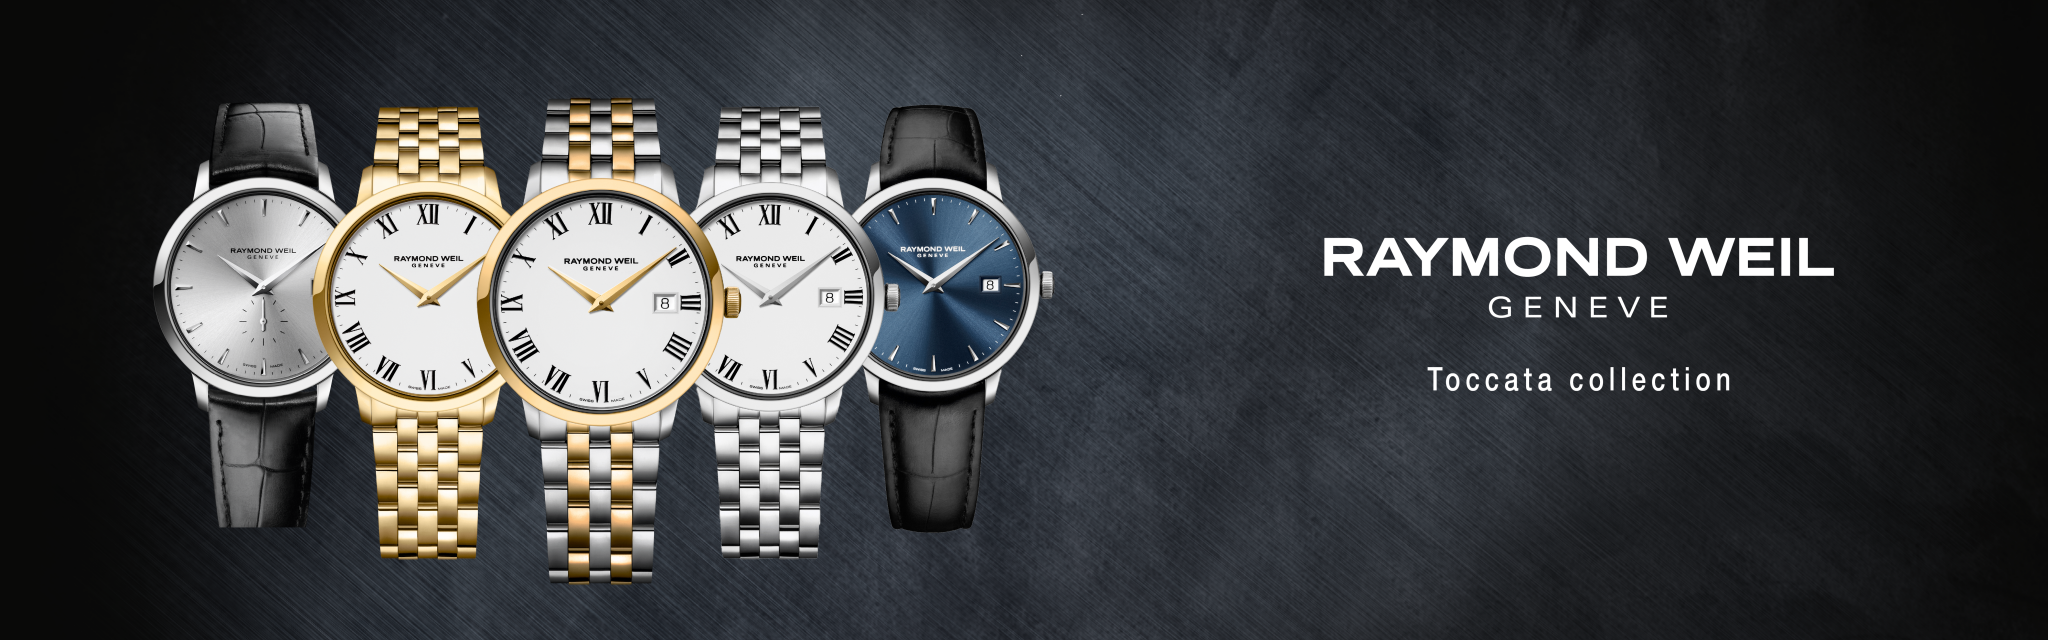 Introducing the freelancer gents collection